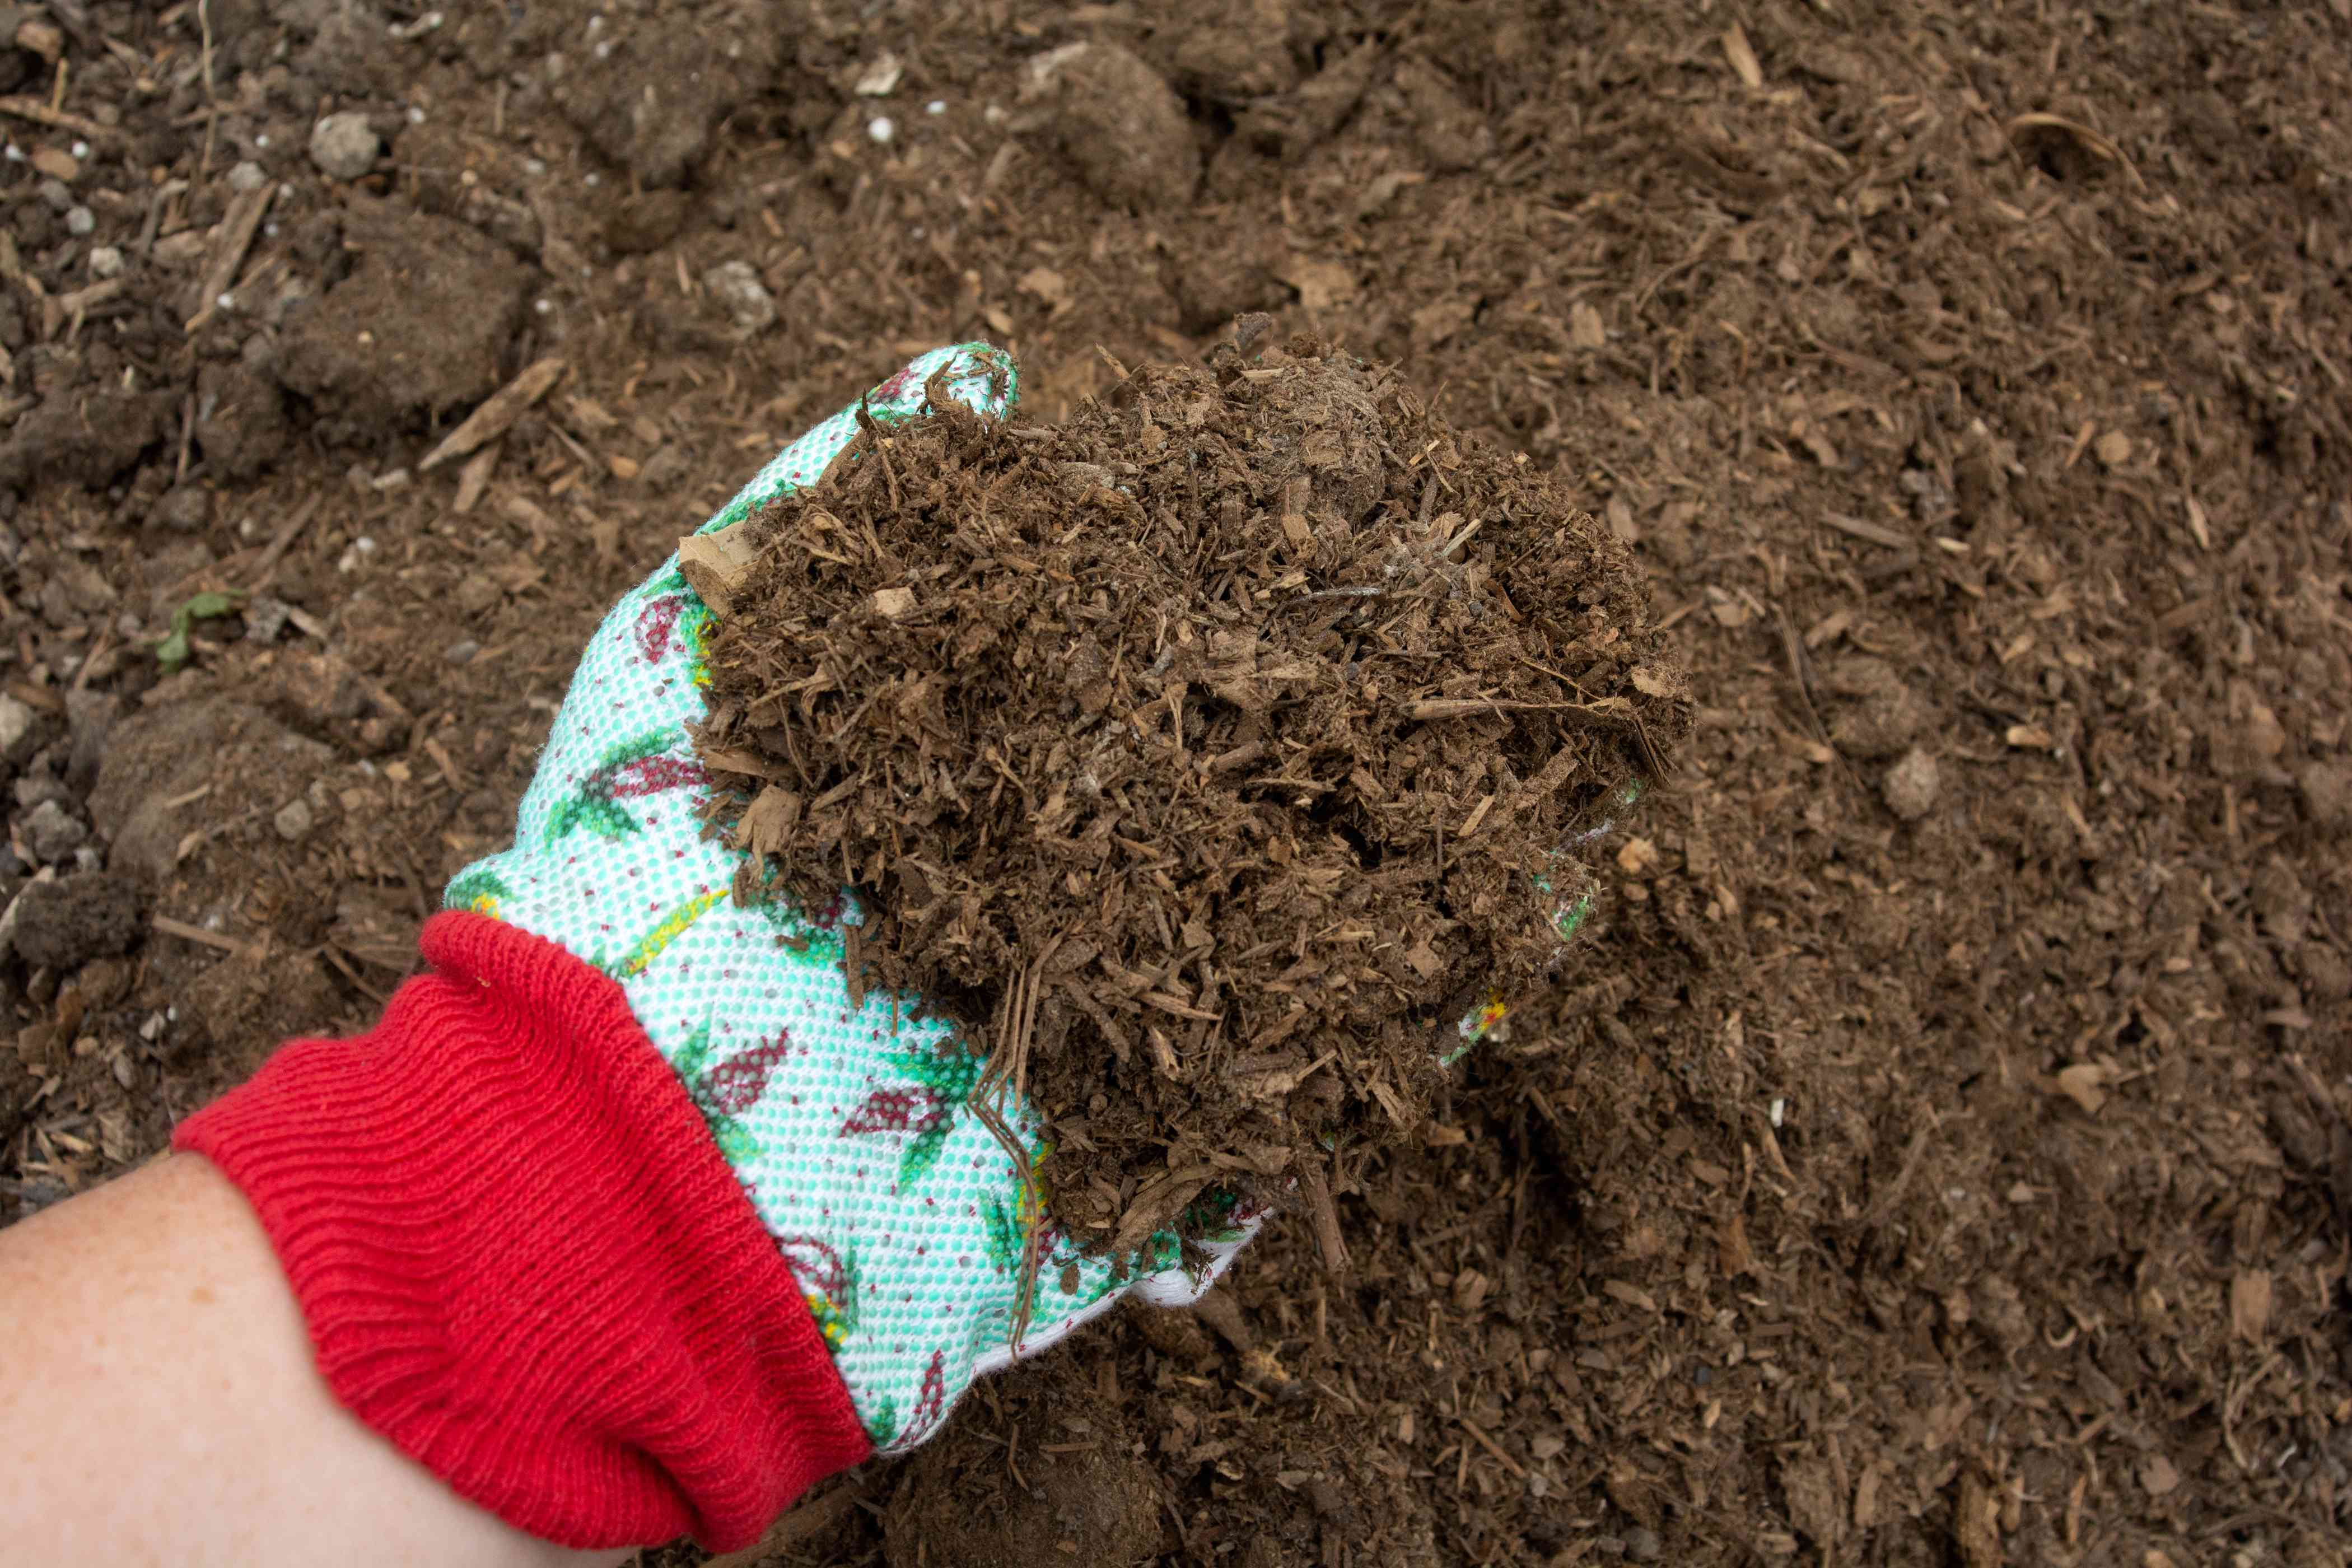 Soil texture mixed with decaying organic materials